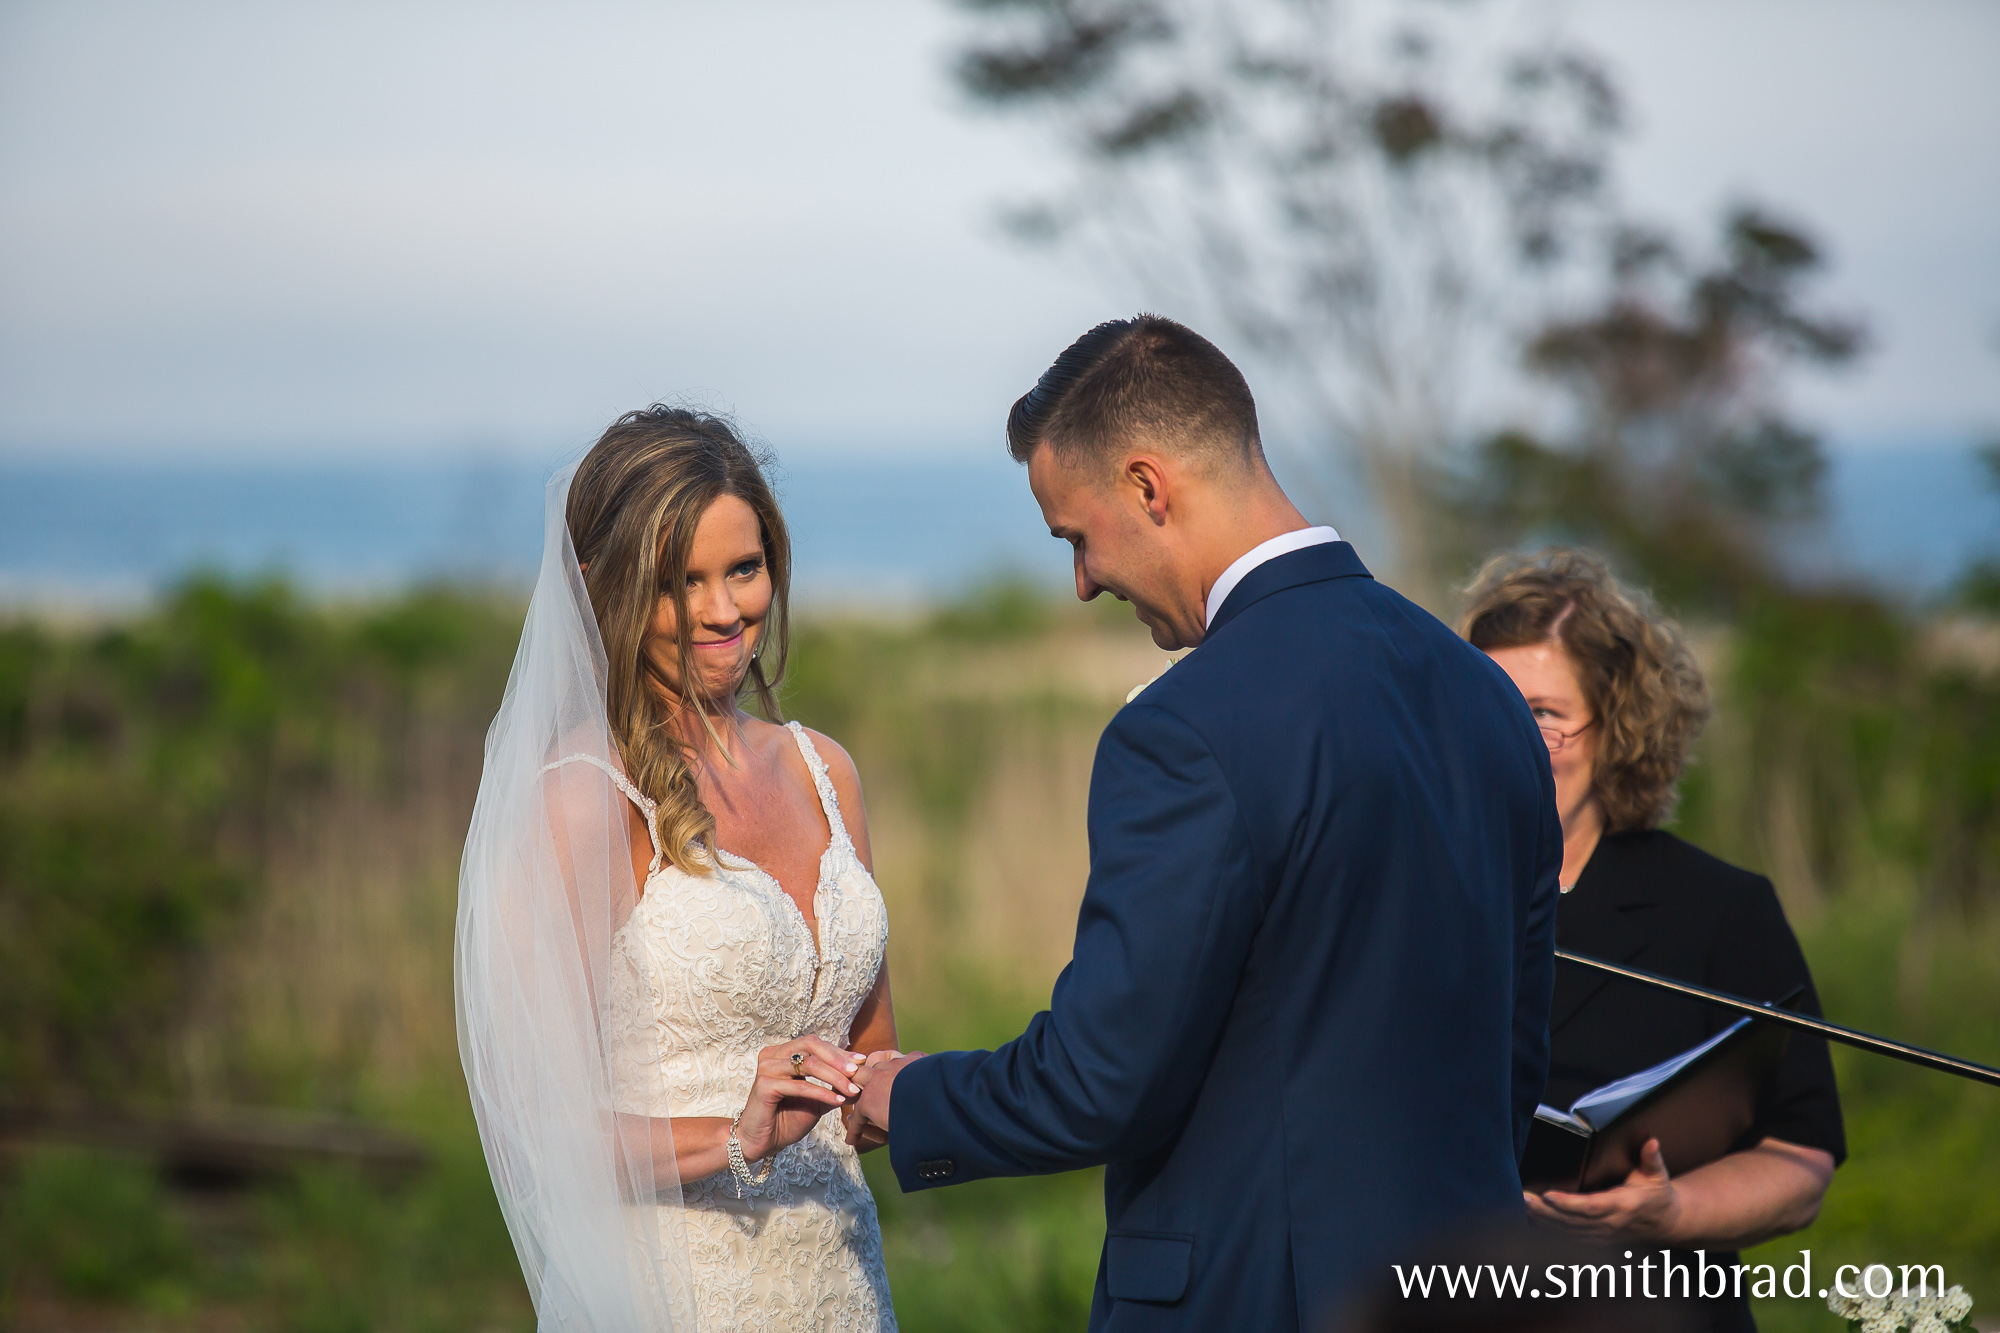 Ocean_House_Watch_Hill_Westerly_Rhode_Island_Beach_Wedding_Photography_Photographer-27